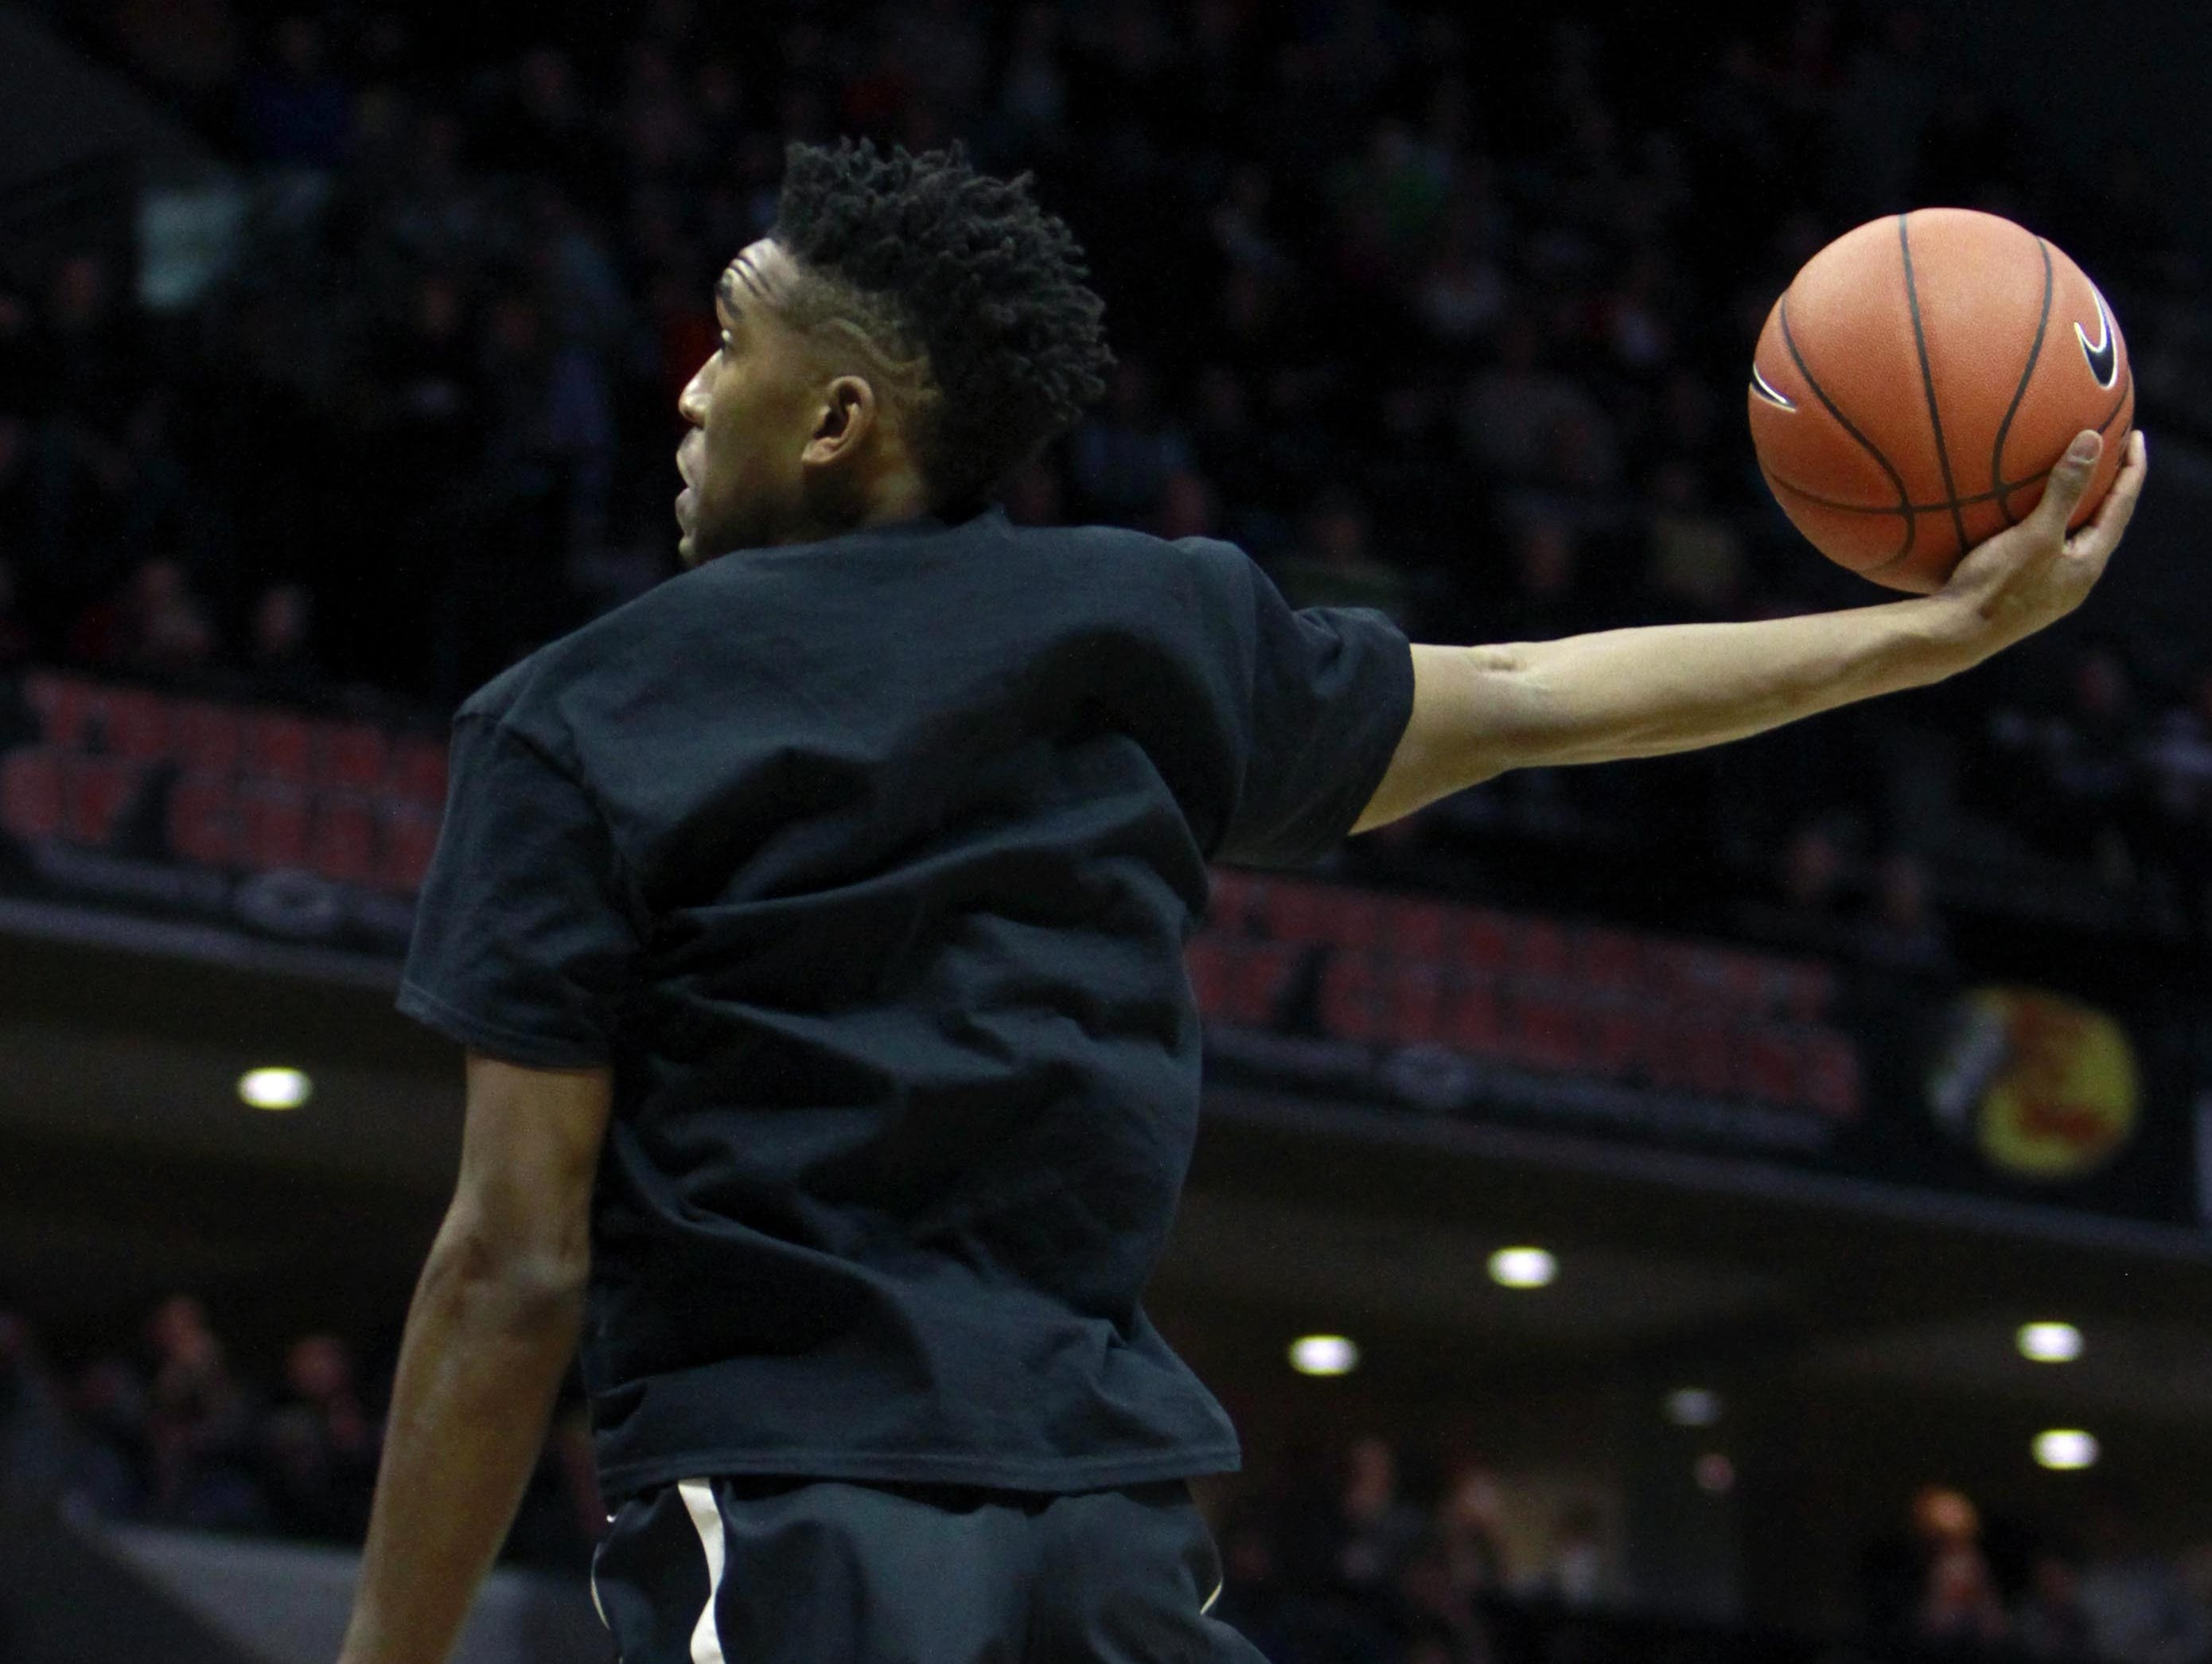 University of Kentucky guard Malik Monk won the inaugural slam dunk contest at the 2015 Bass Pro Tournament of Champions while a junior at Bentonville (Bentonville, Arkansas).